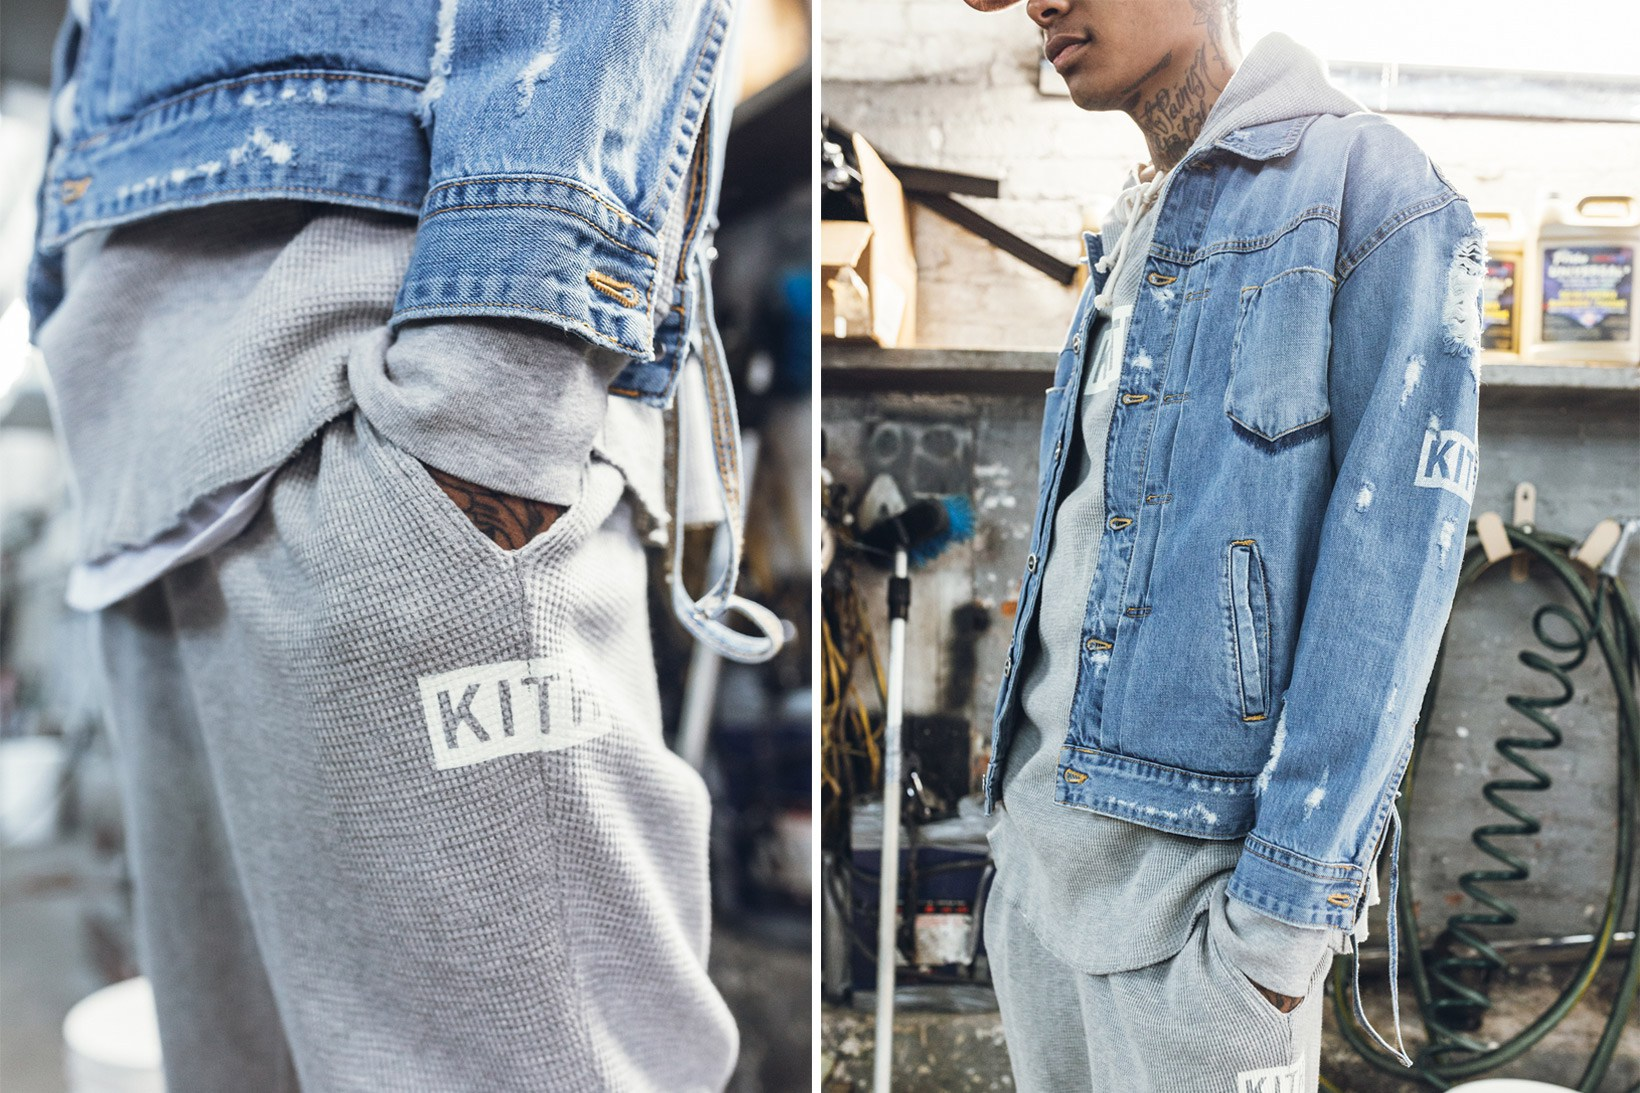 kith-2017-spring-collection-2